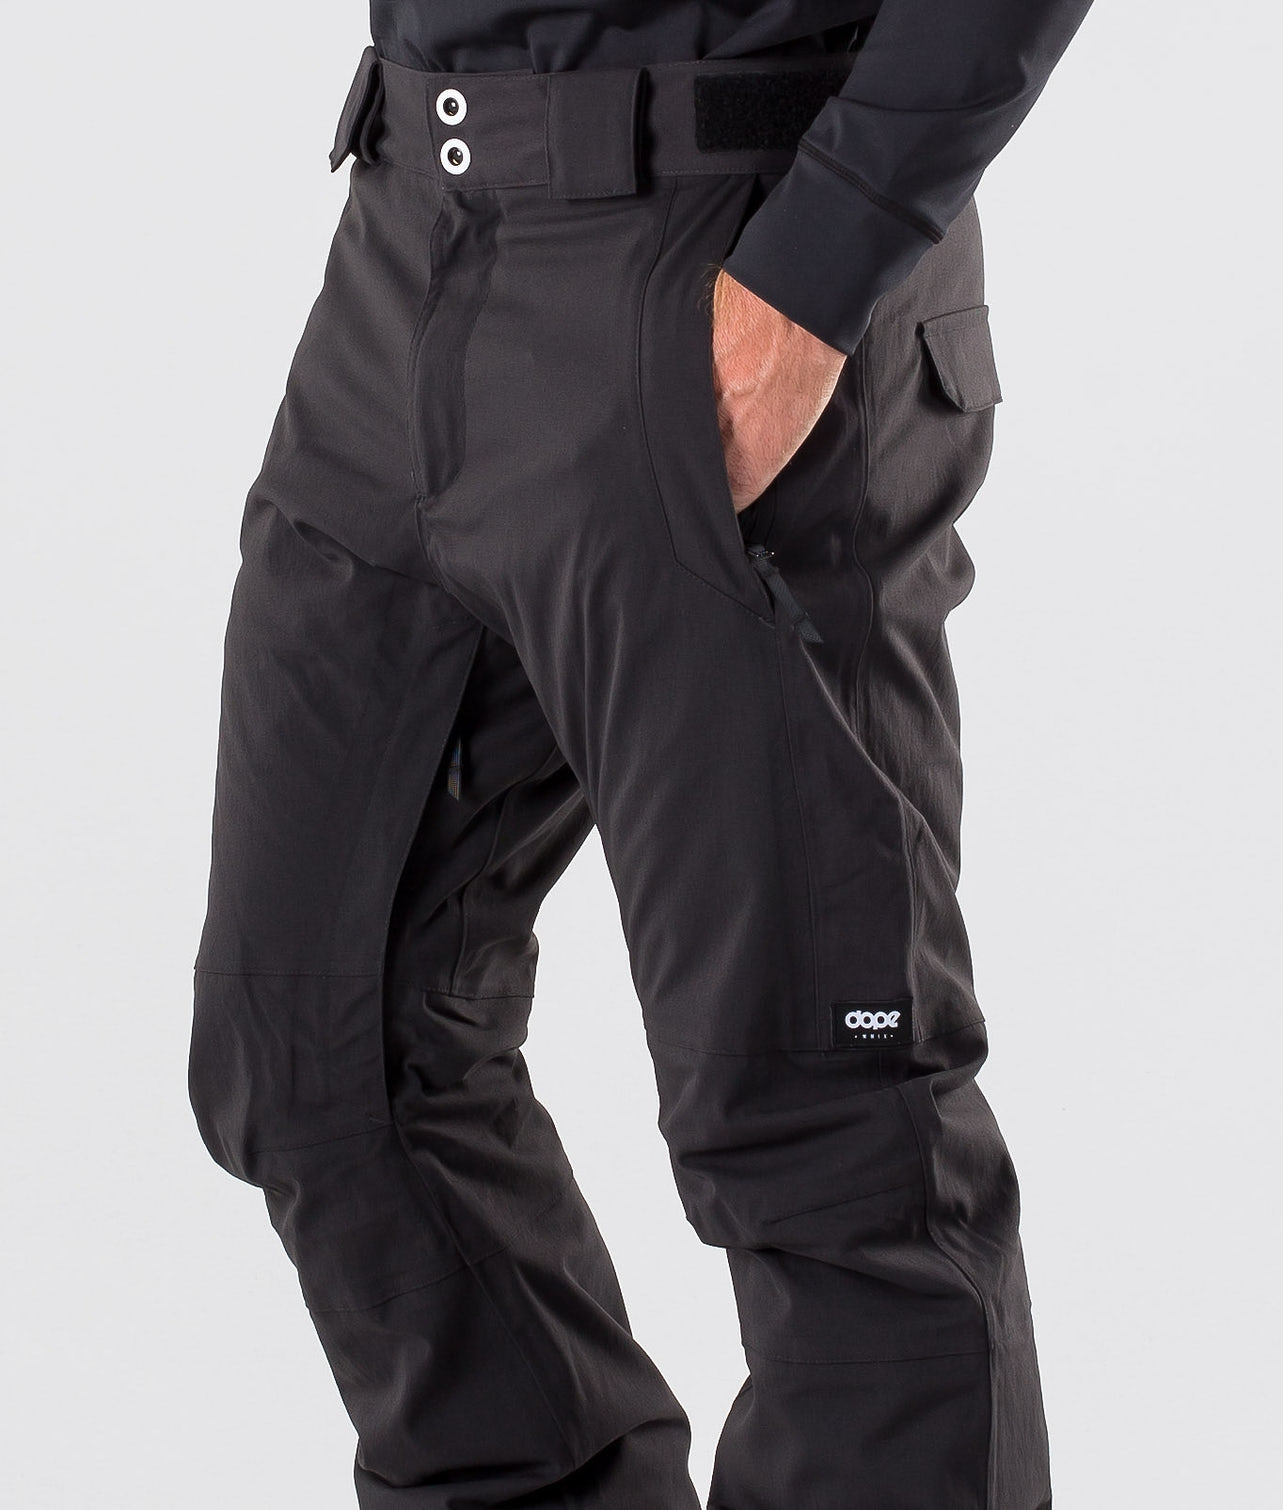 Buy Hoax II Ski Pants from Dope at Ridestore.com - Always free shipping, free returns and 30 days money back guarantee